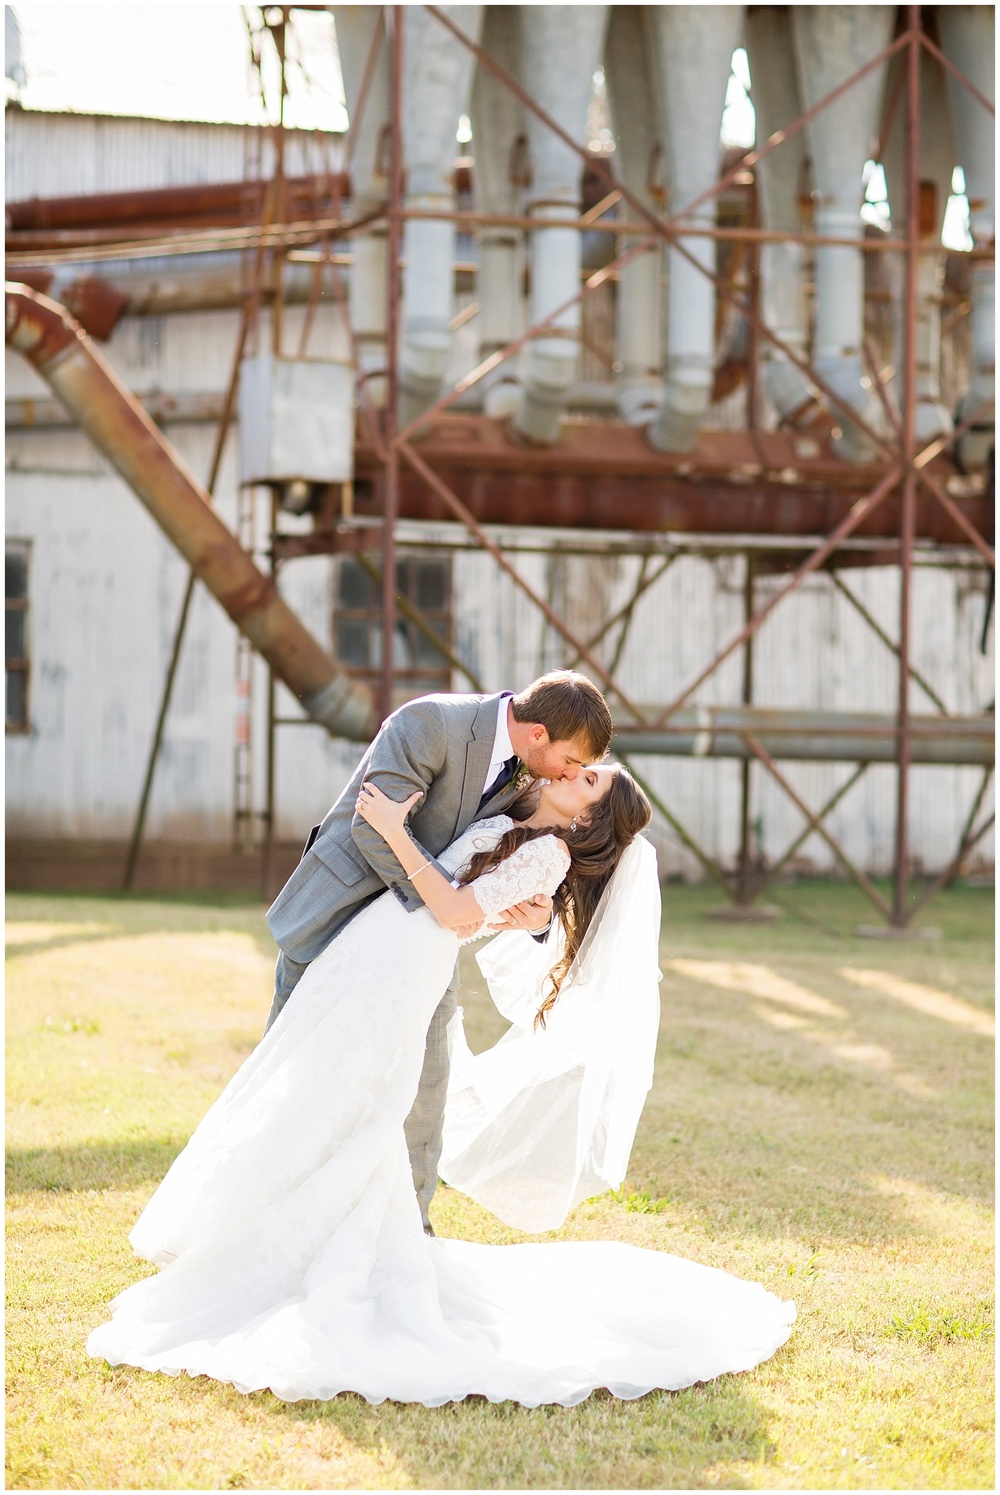 Kinler_DixieGin_Shreveport_Wedding_45.jpg